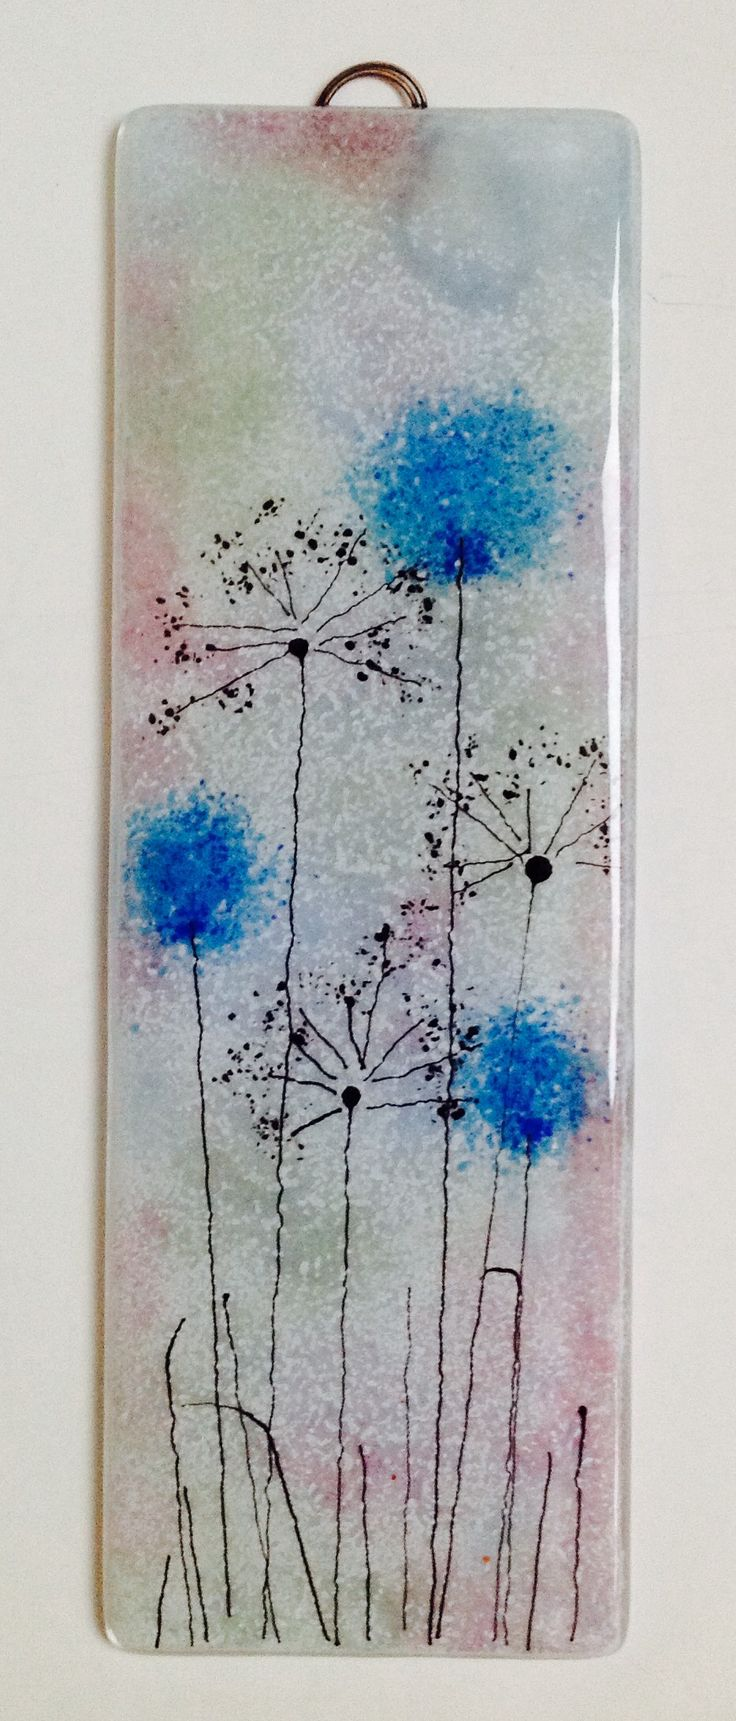 Fused glass panel in pale blue and pink with blue frit flowers and black seed head silhouettes. Email : info@firedcreations.co.uk